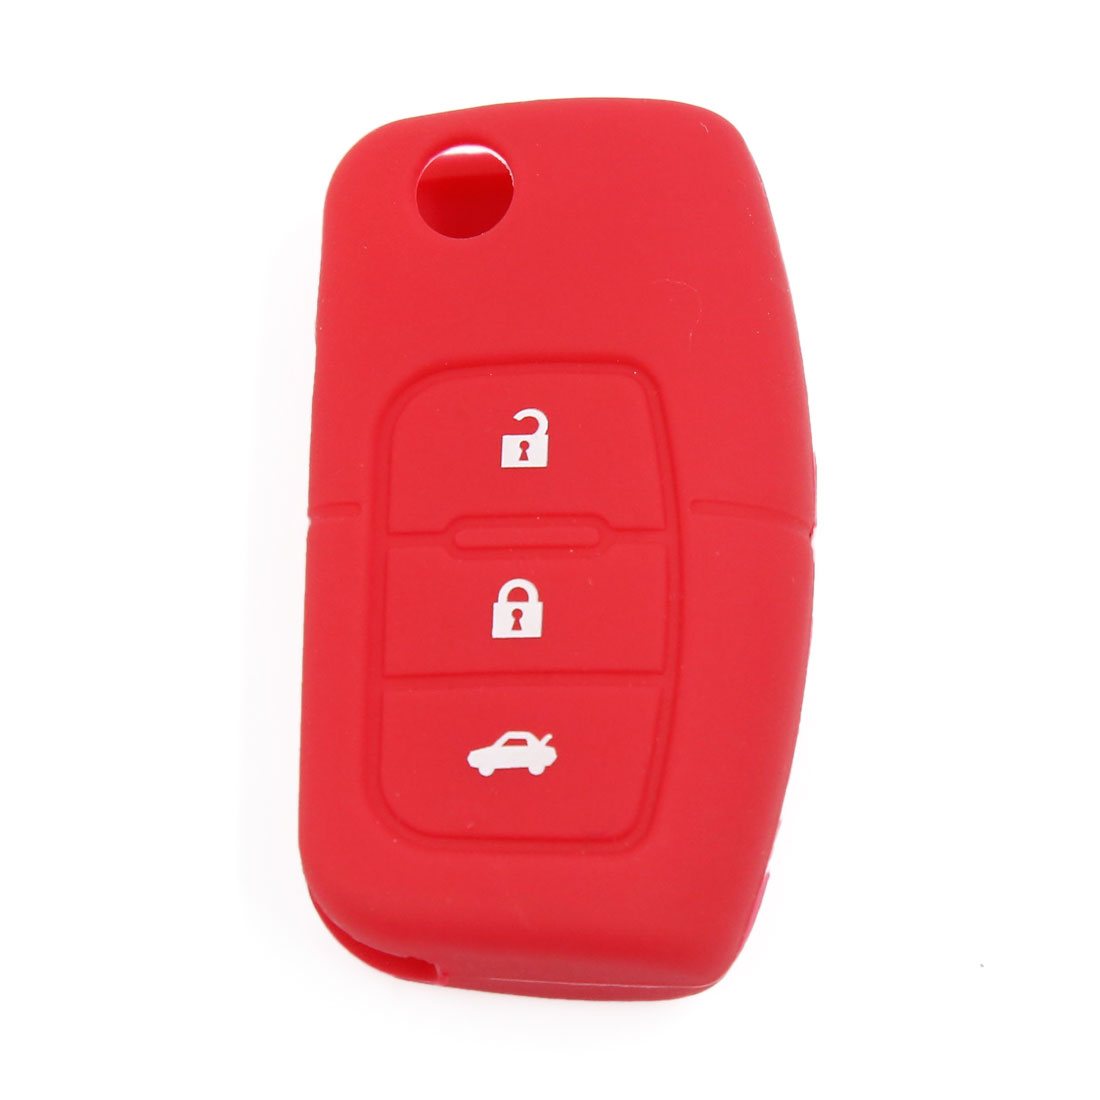 Red Silicone Car Remote Fob Key Holder Case Cover 3 Button for Ford Focus Fiesta